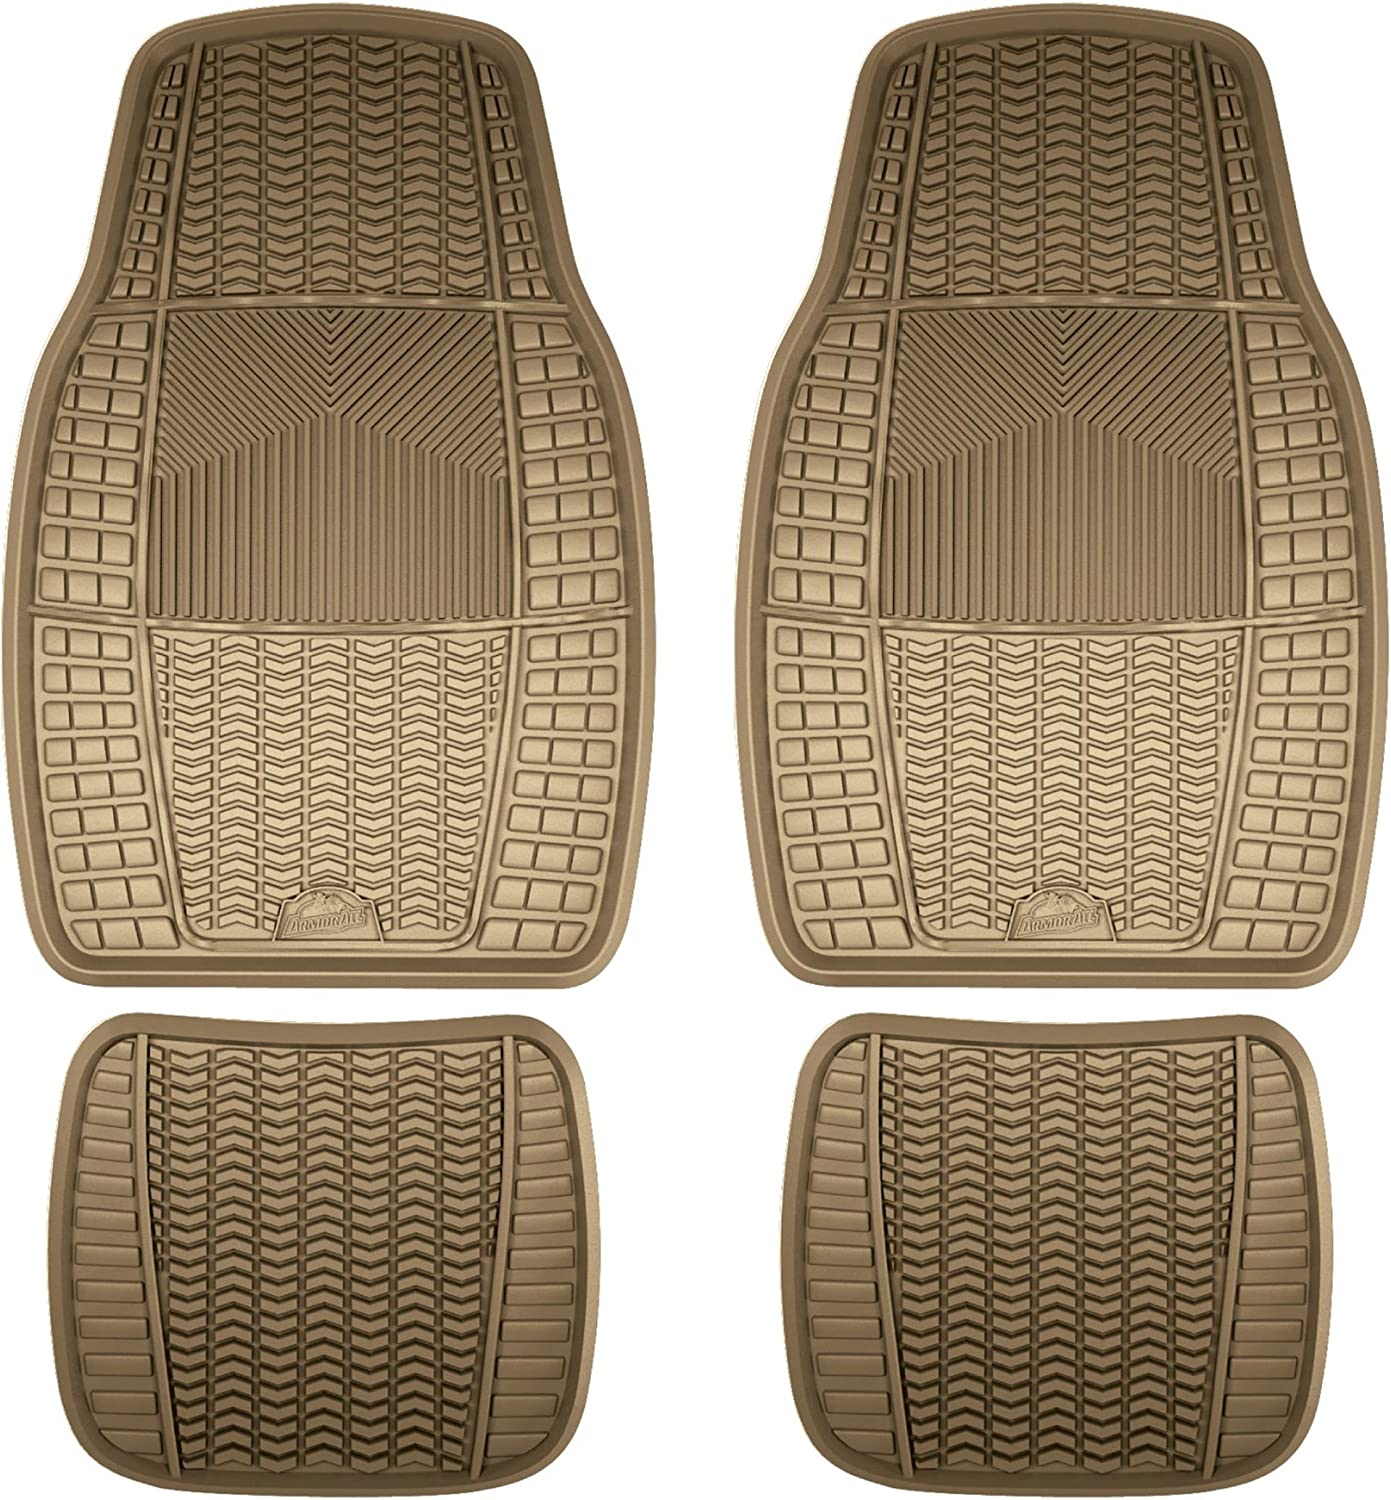 Armor All 78843 Black 3-Piece Full Coverage Rubber Floor Mat